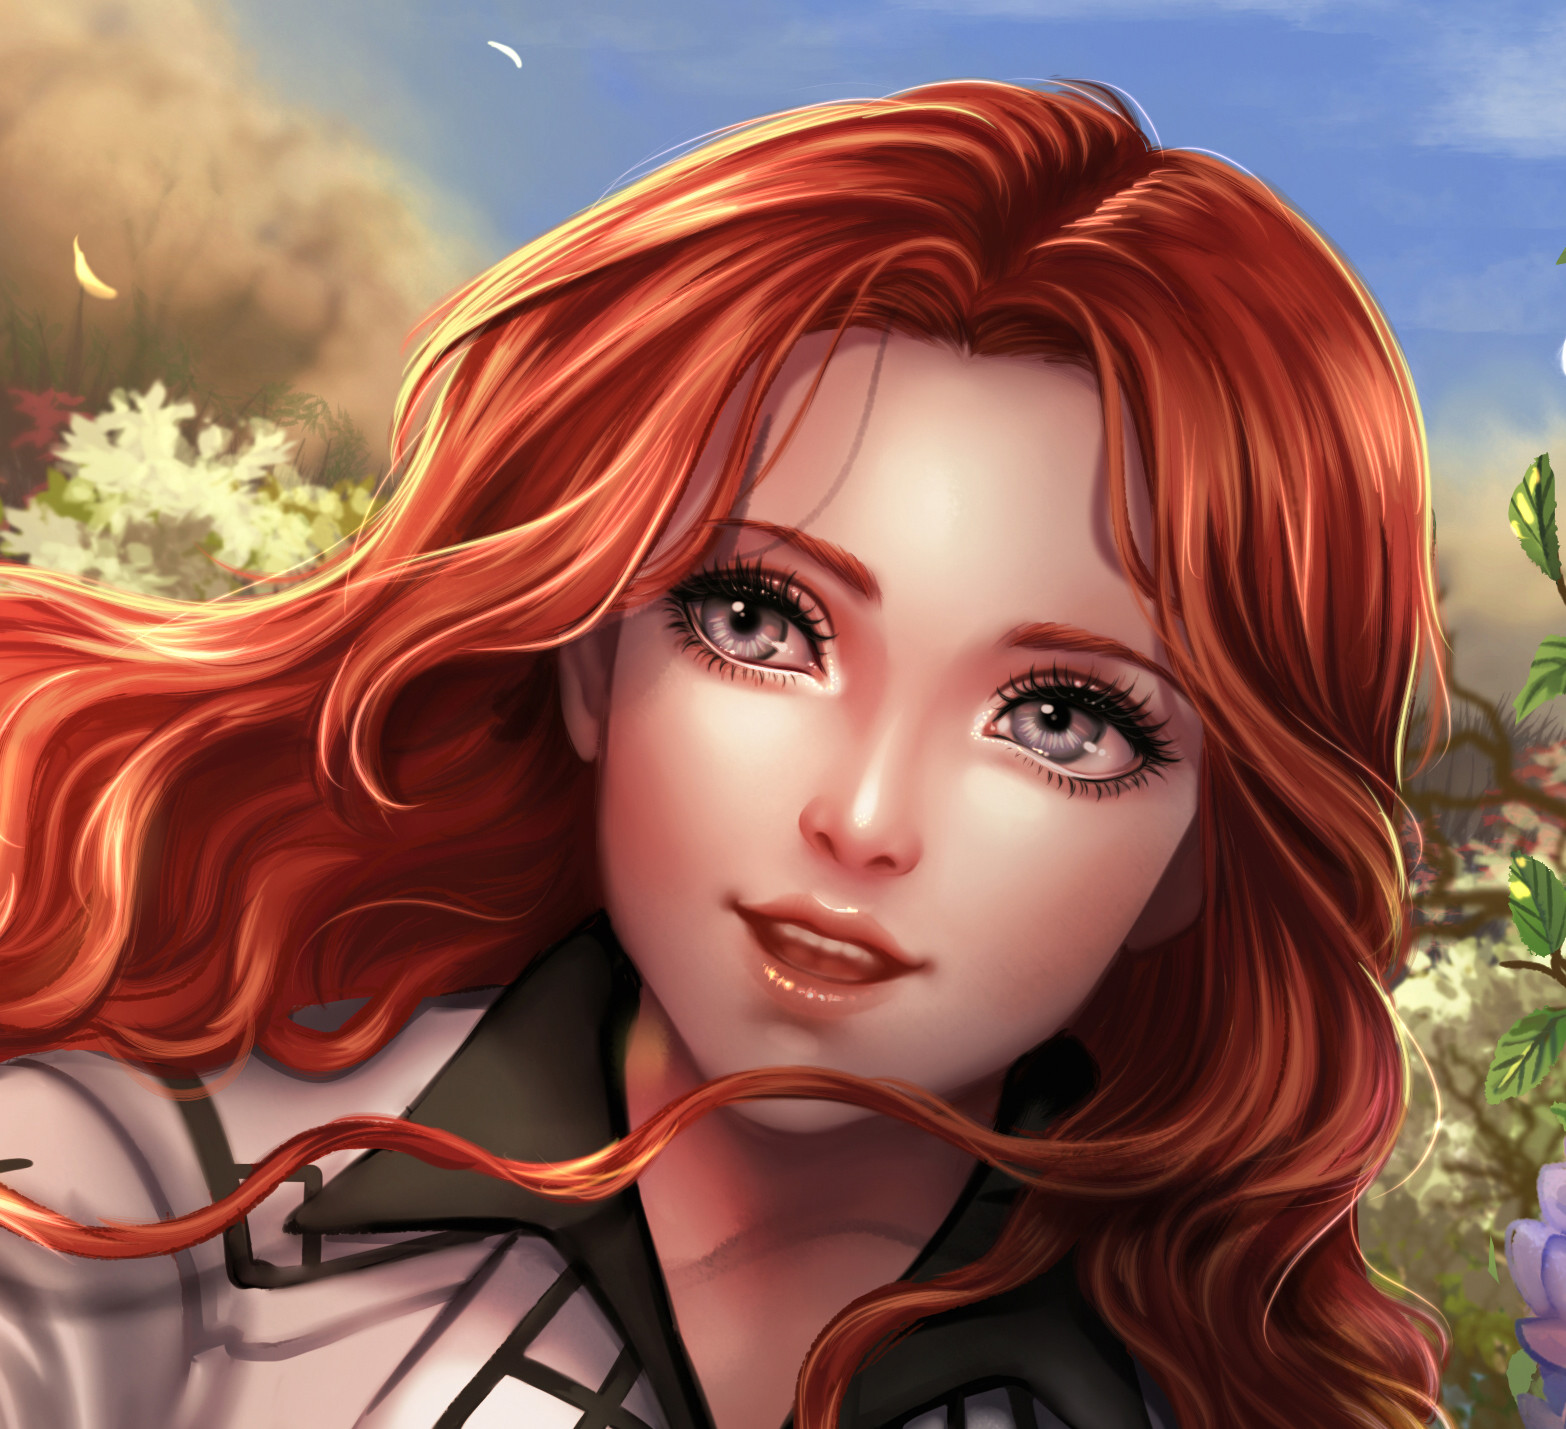 Nathania h comm for ladymidnightsolace detail2 by enmoire